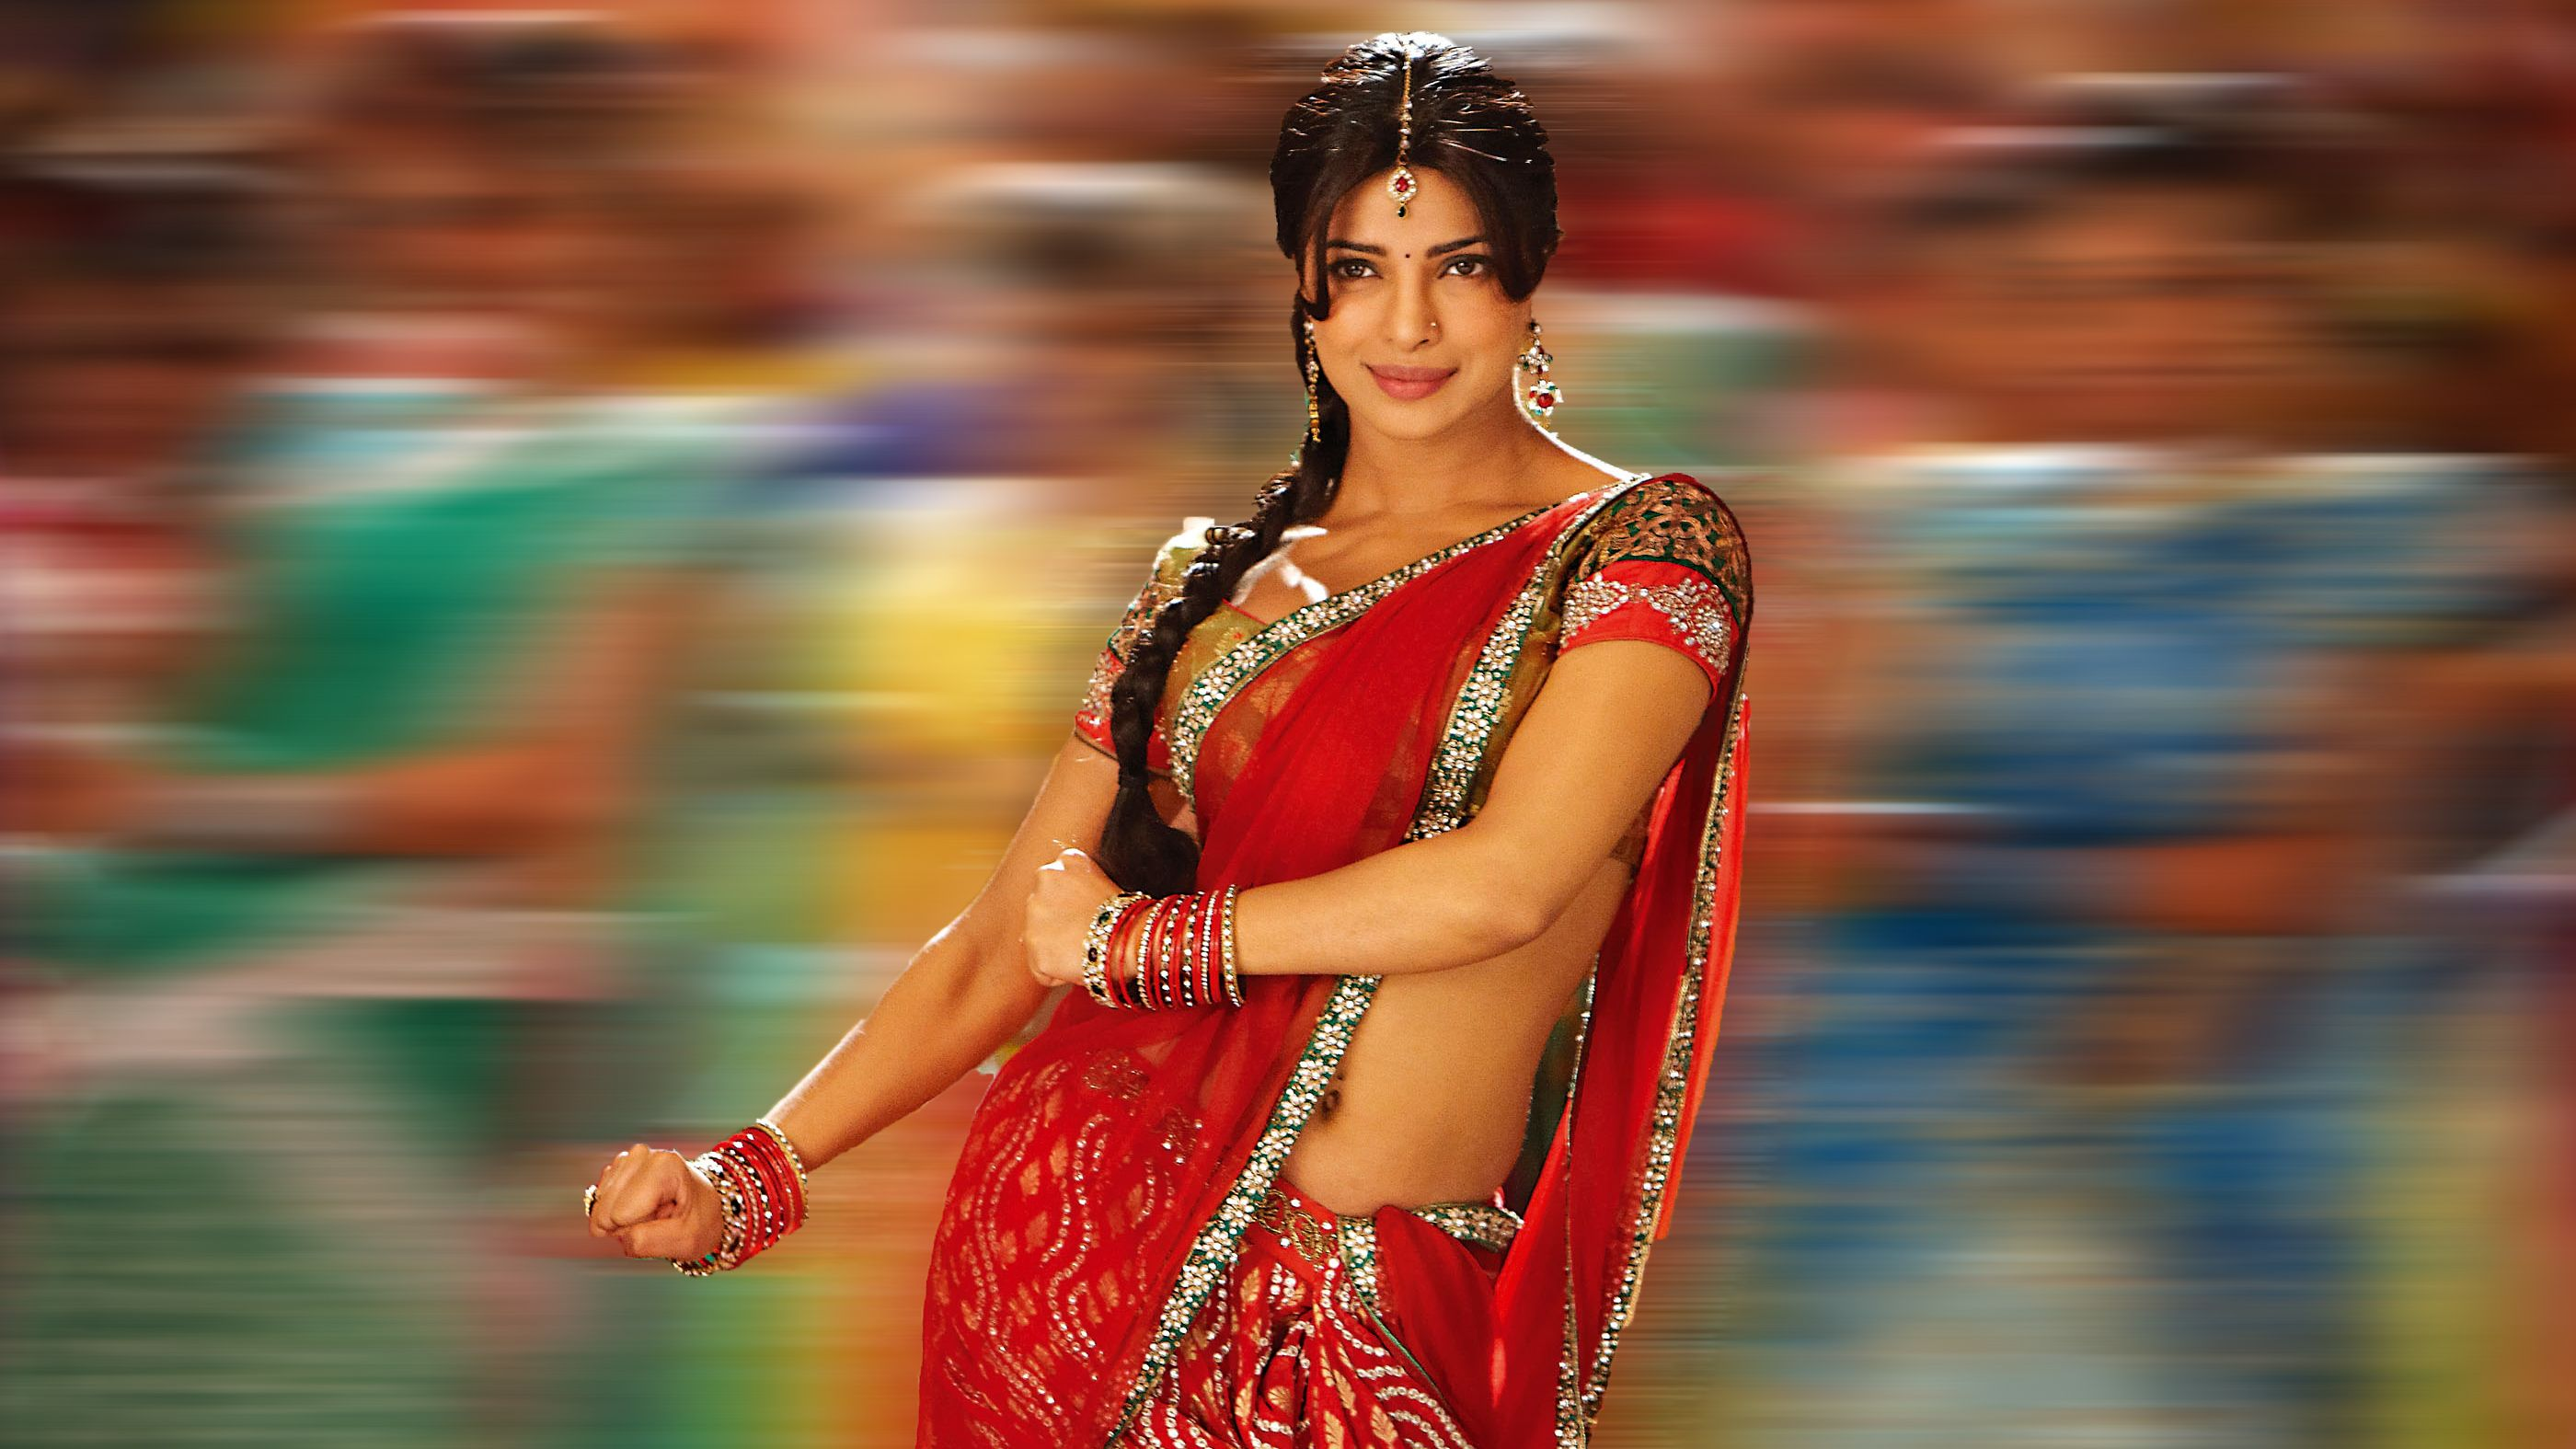 Saree 4K wallpapers for your desktop or mobile screen free and easy to download